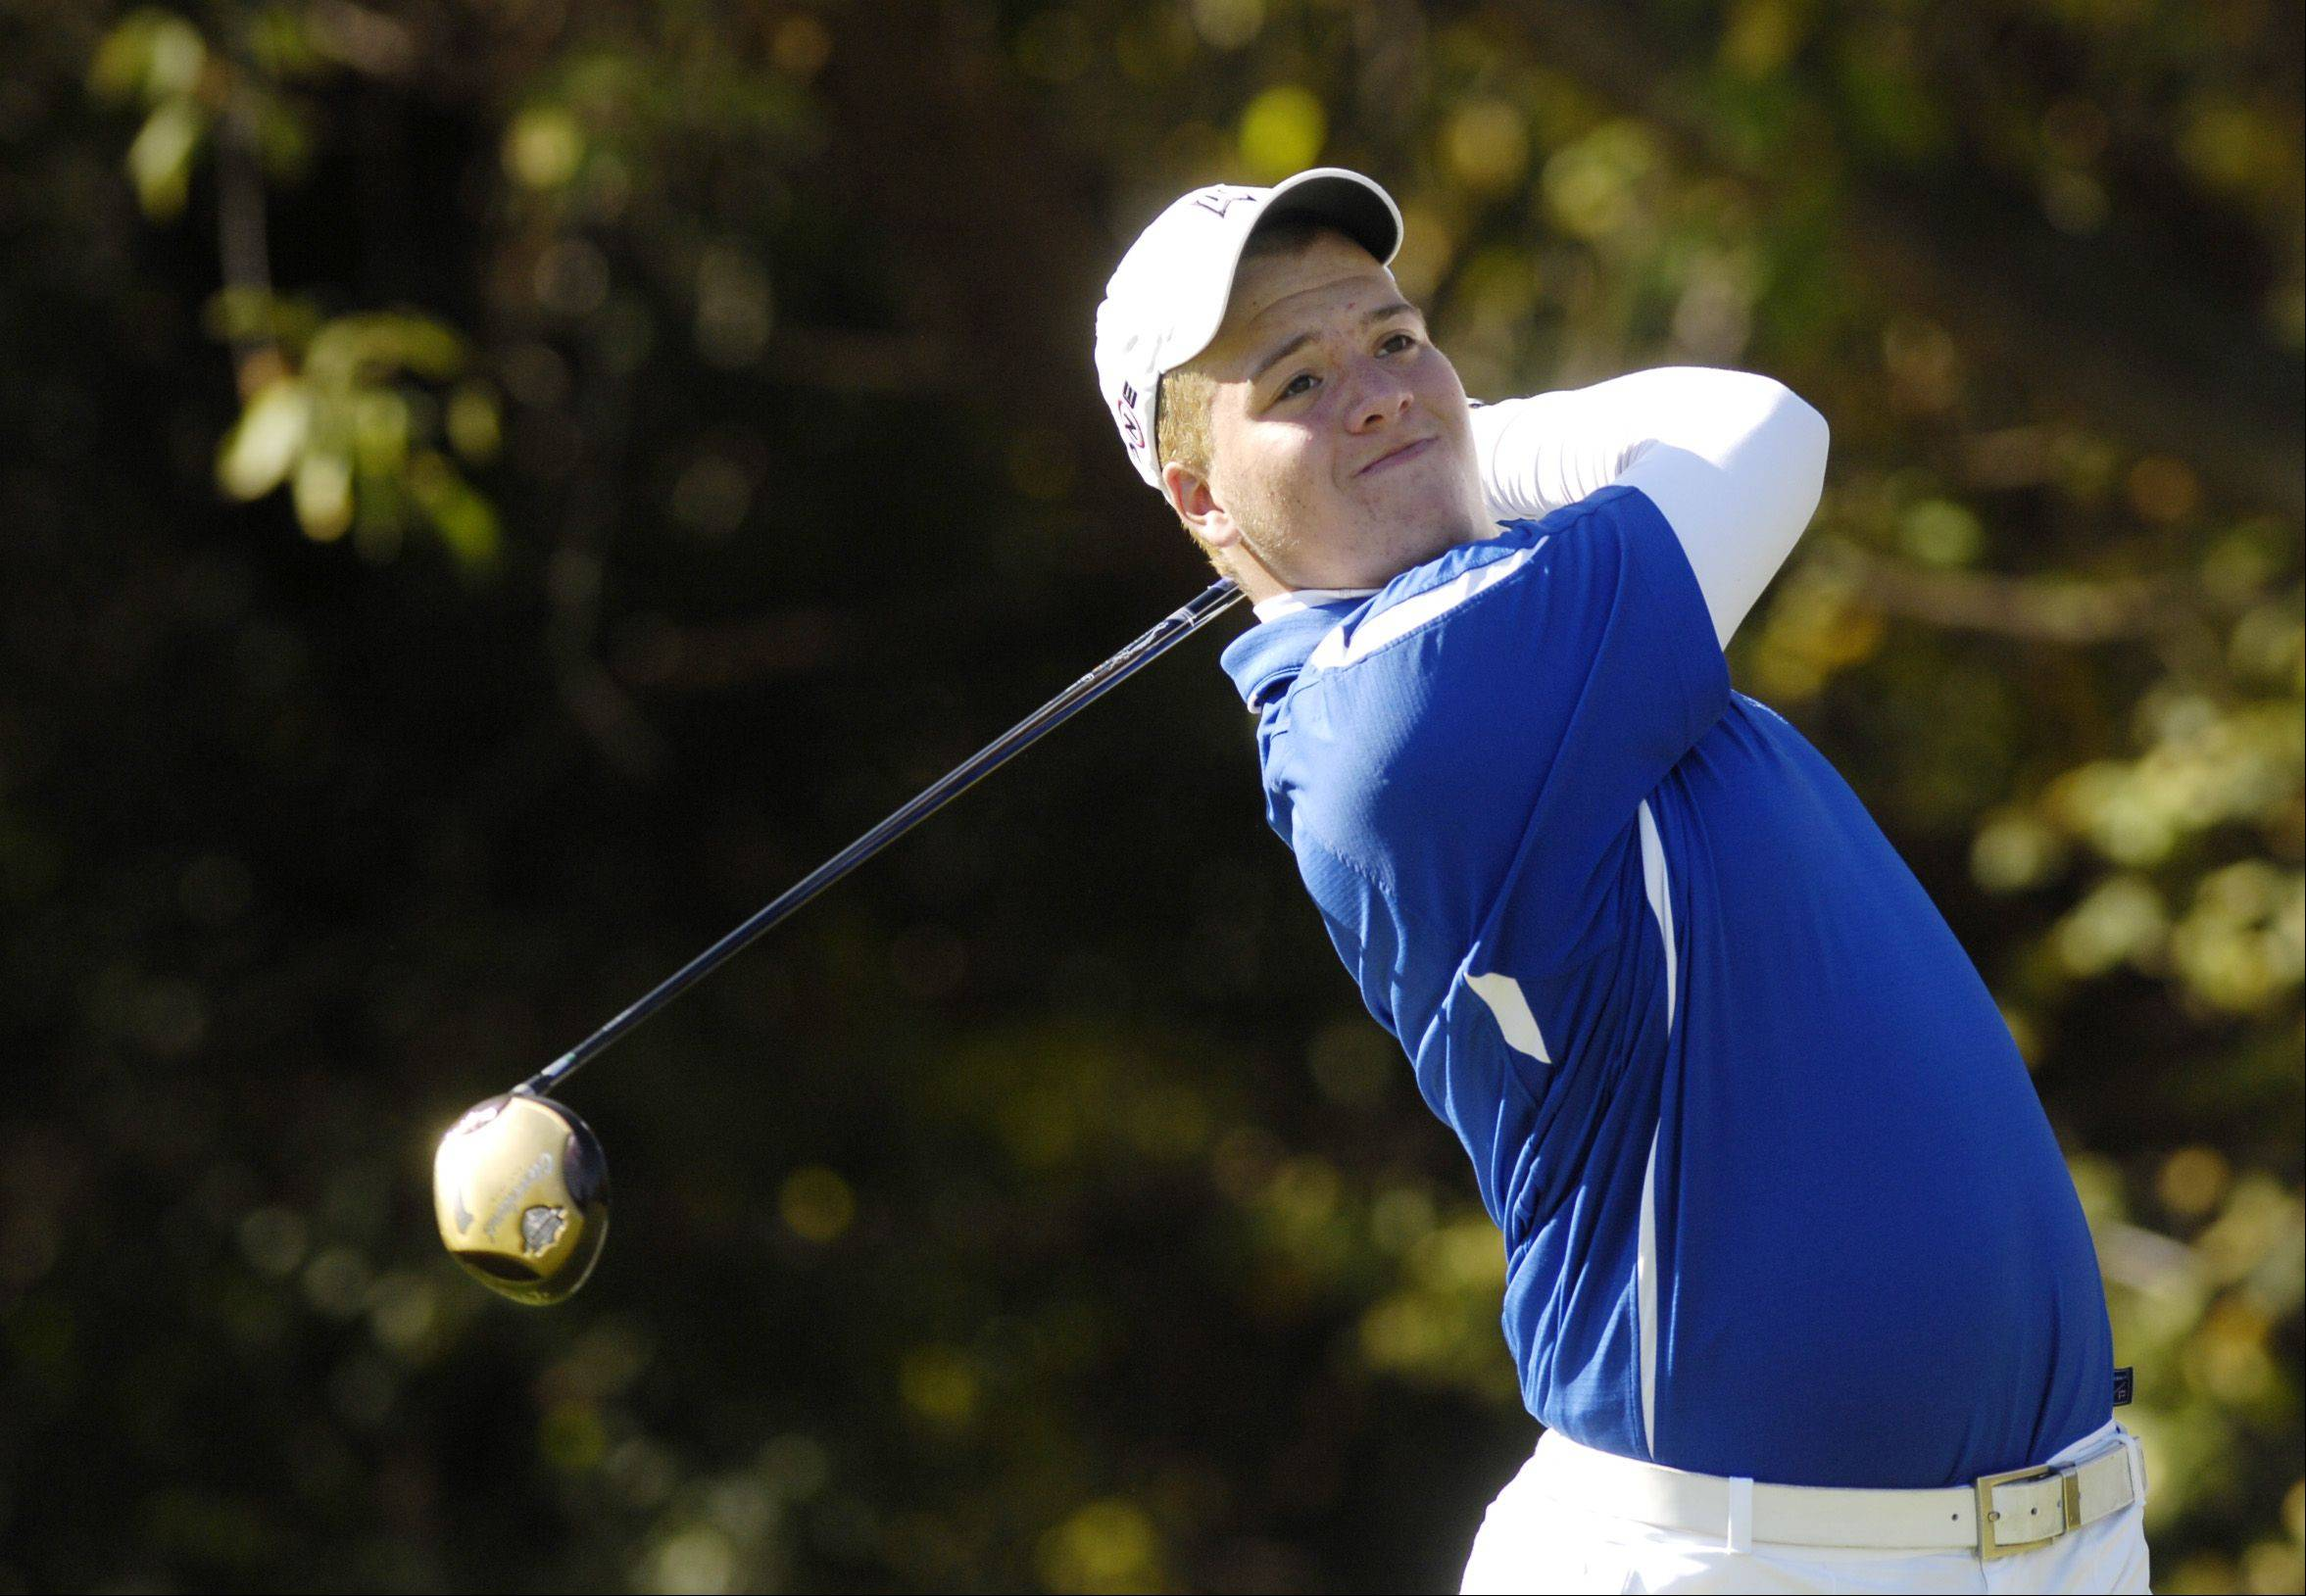 Nate Desens of Geneva tees off during the St. Charles East boys varsity golf sectional at St. Andrews Golf Club in West Chicago, Monday.